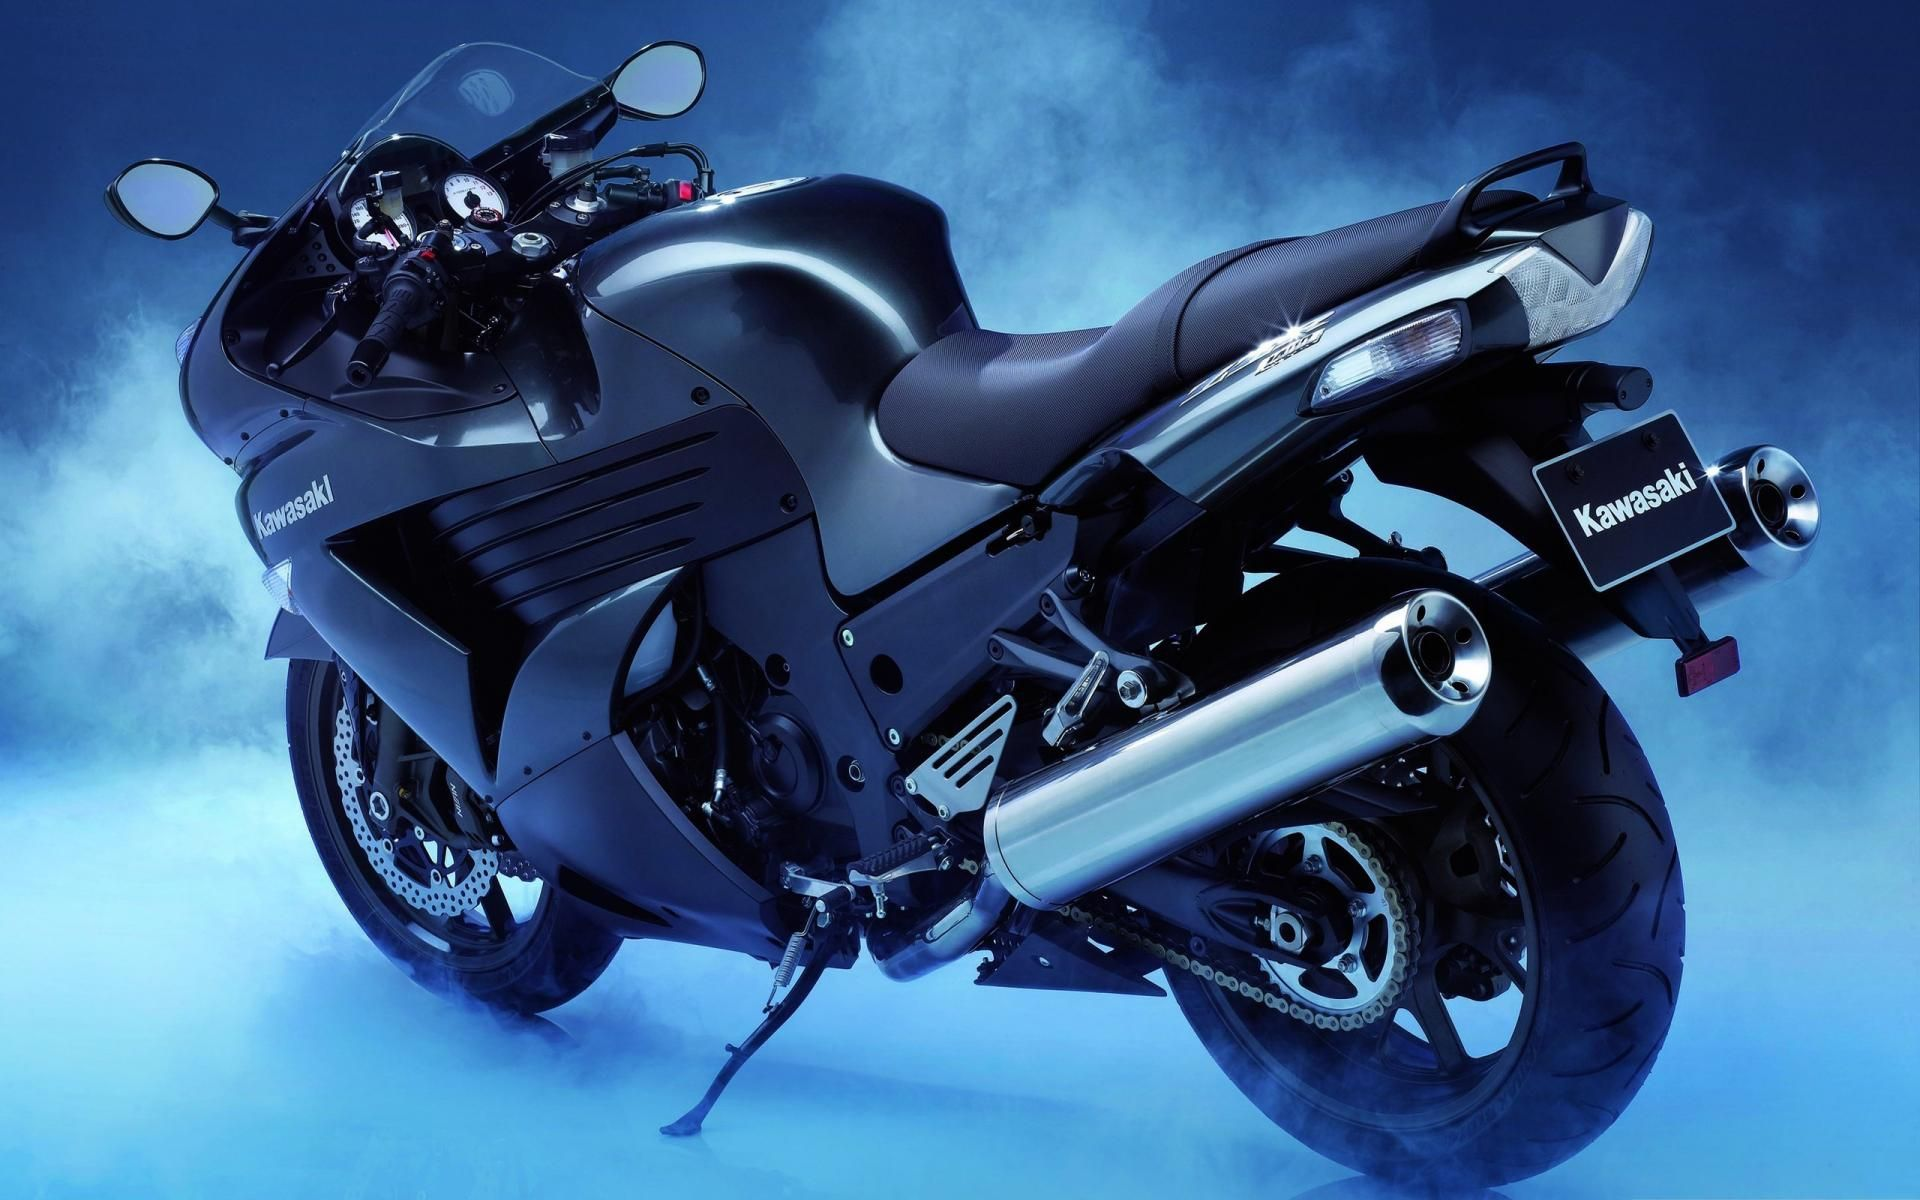 Black Kawasaki Bike Hd Wallpaper Kawasaki Bikes Kawasaki